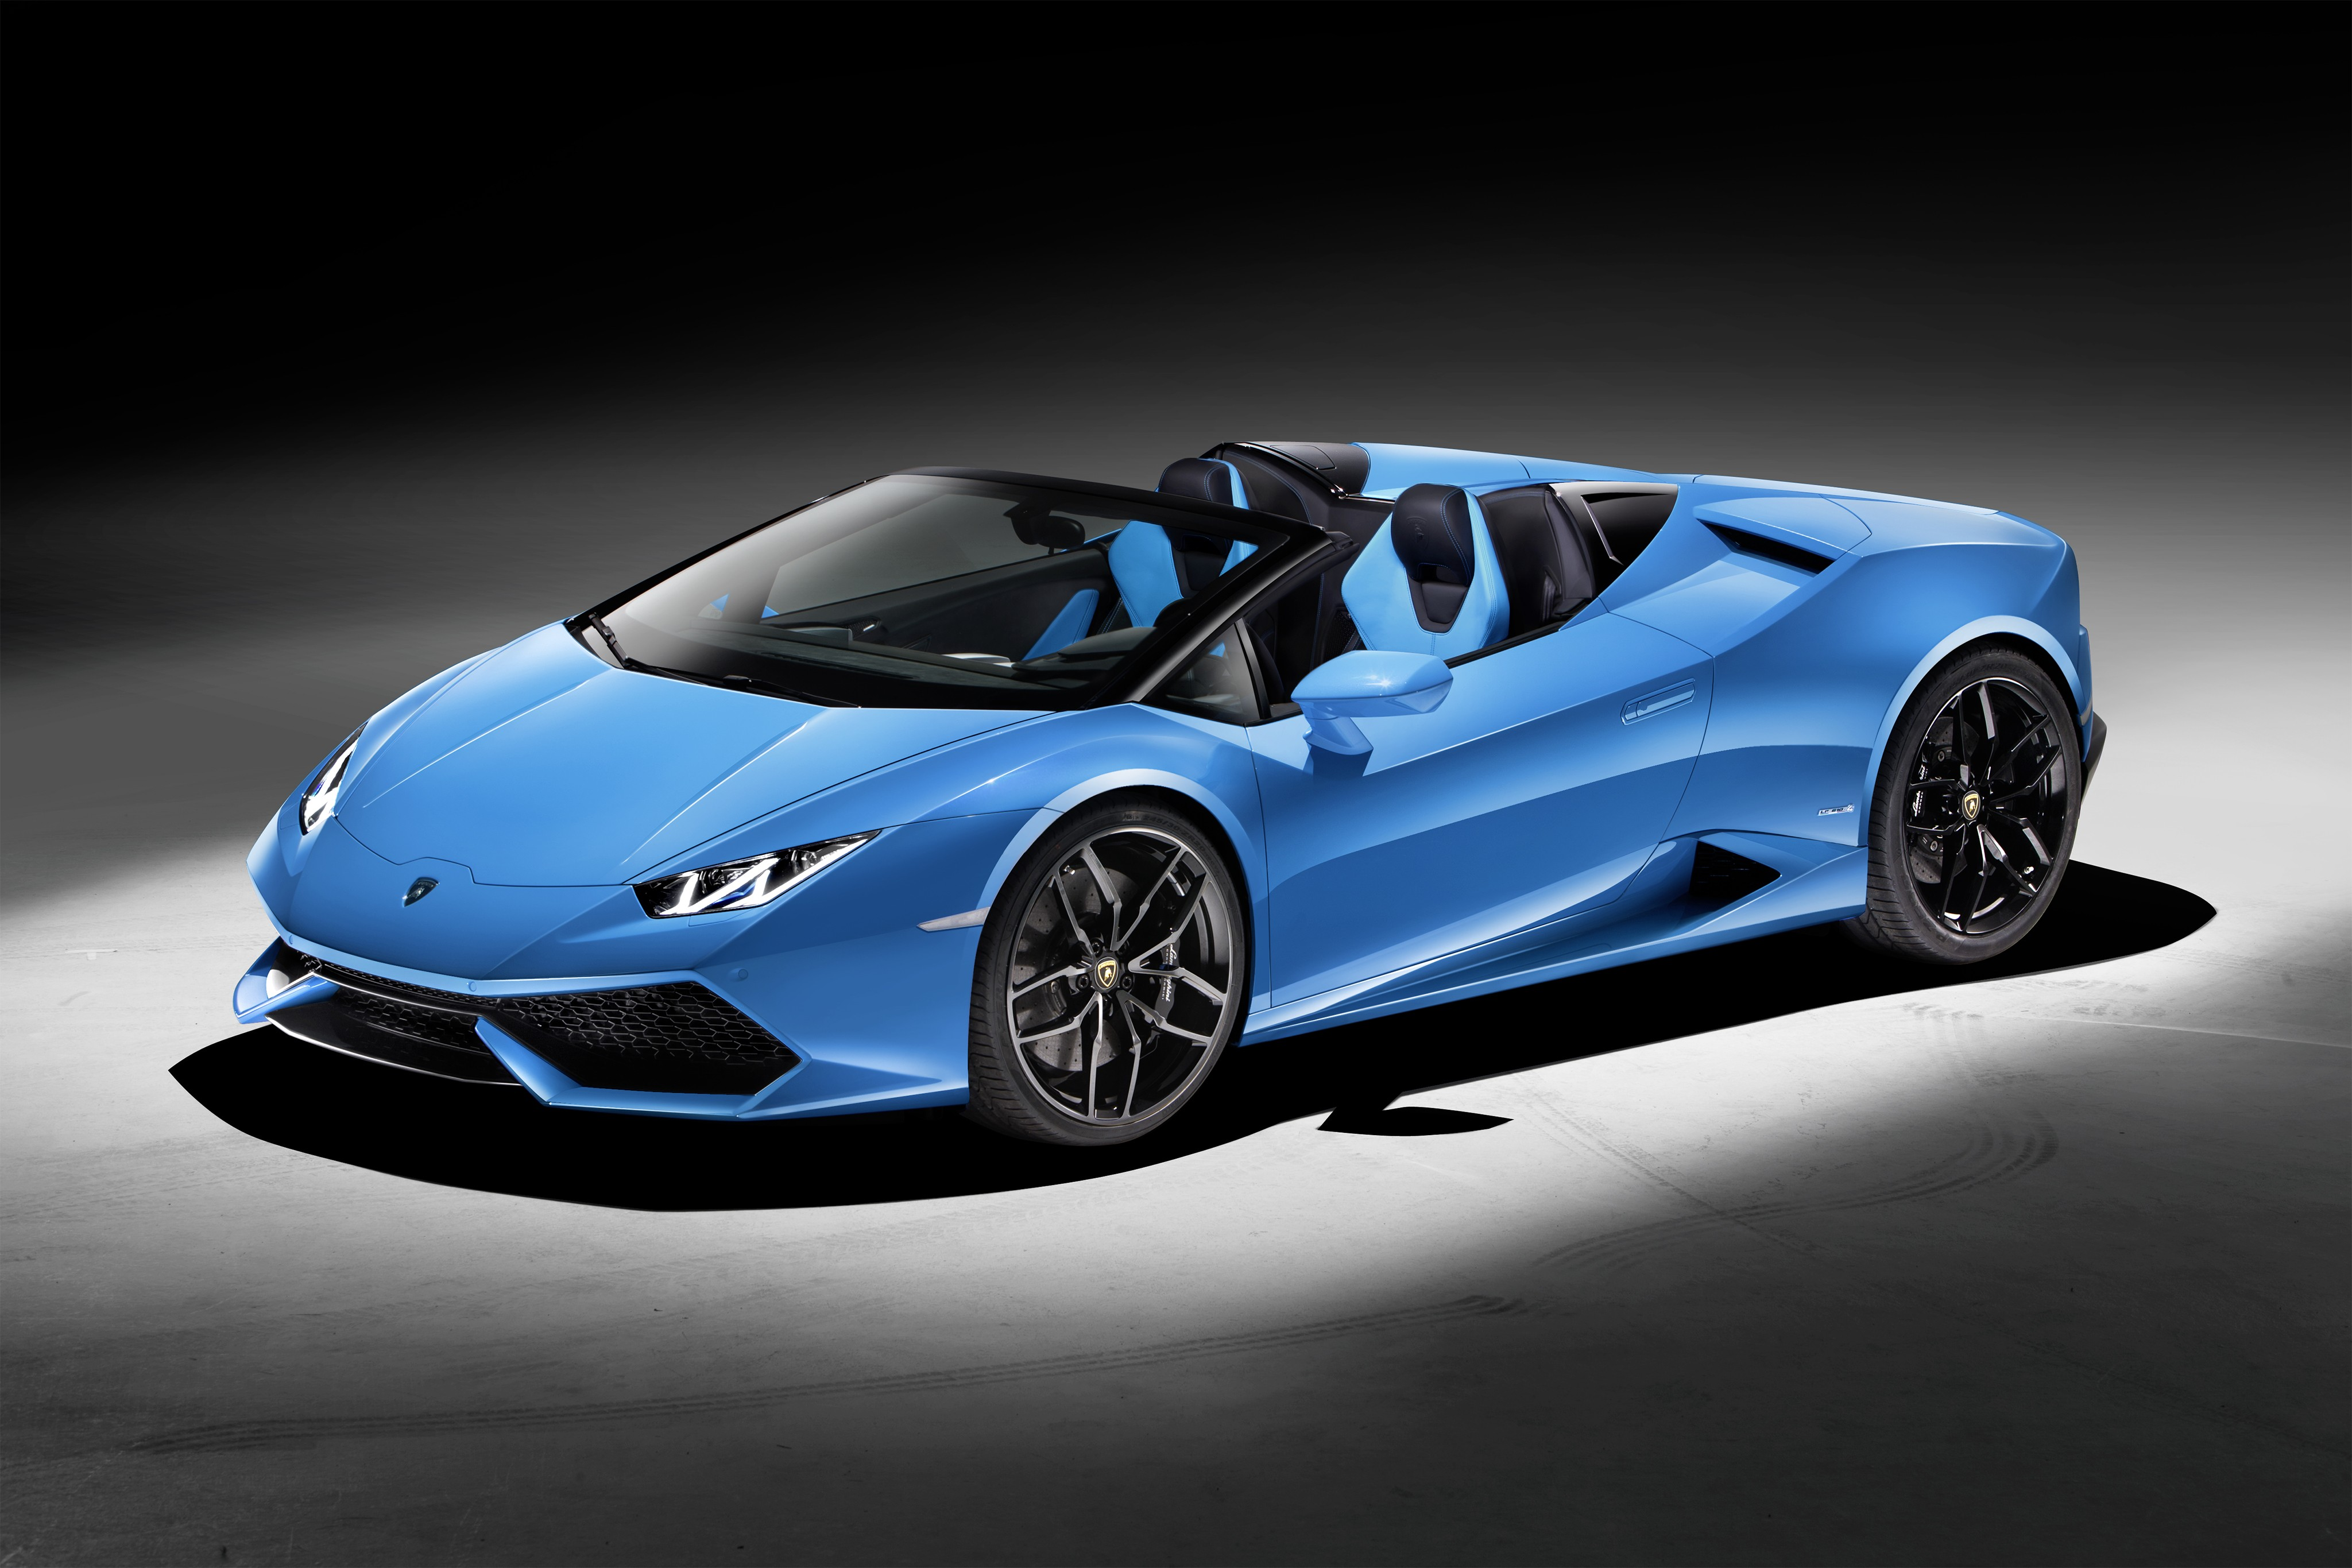 lamborghini huracan lp610 4 spyder specs 2015 2016 2017 2018 autoevolution. Black Bedroom Furniture Sets. Home Design Ideas